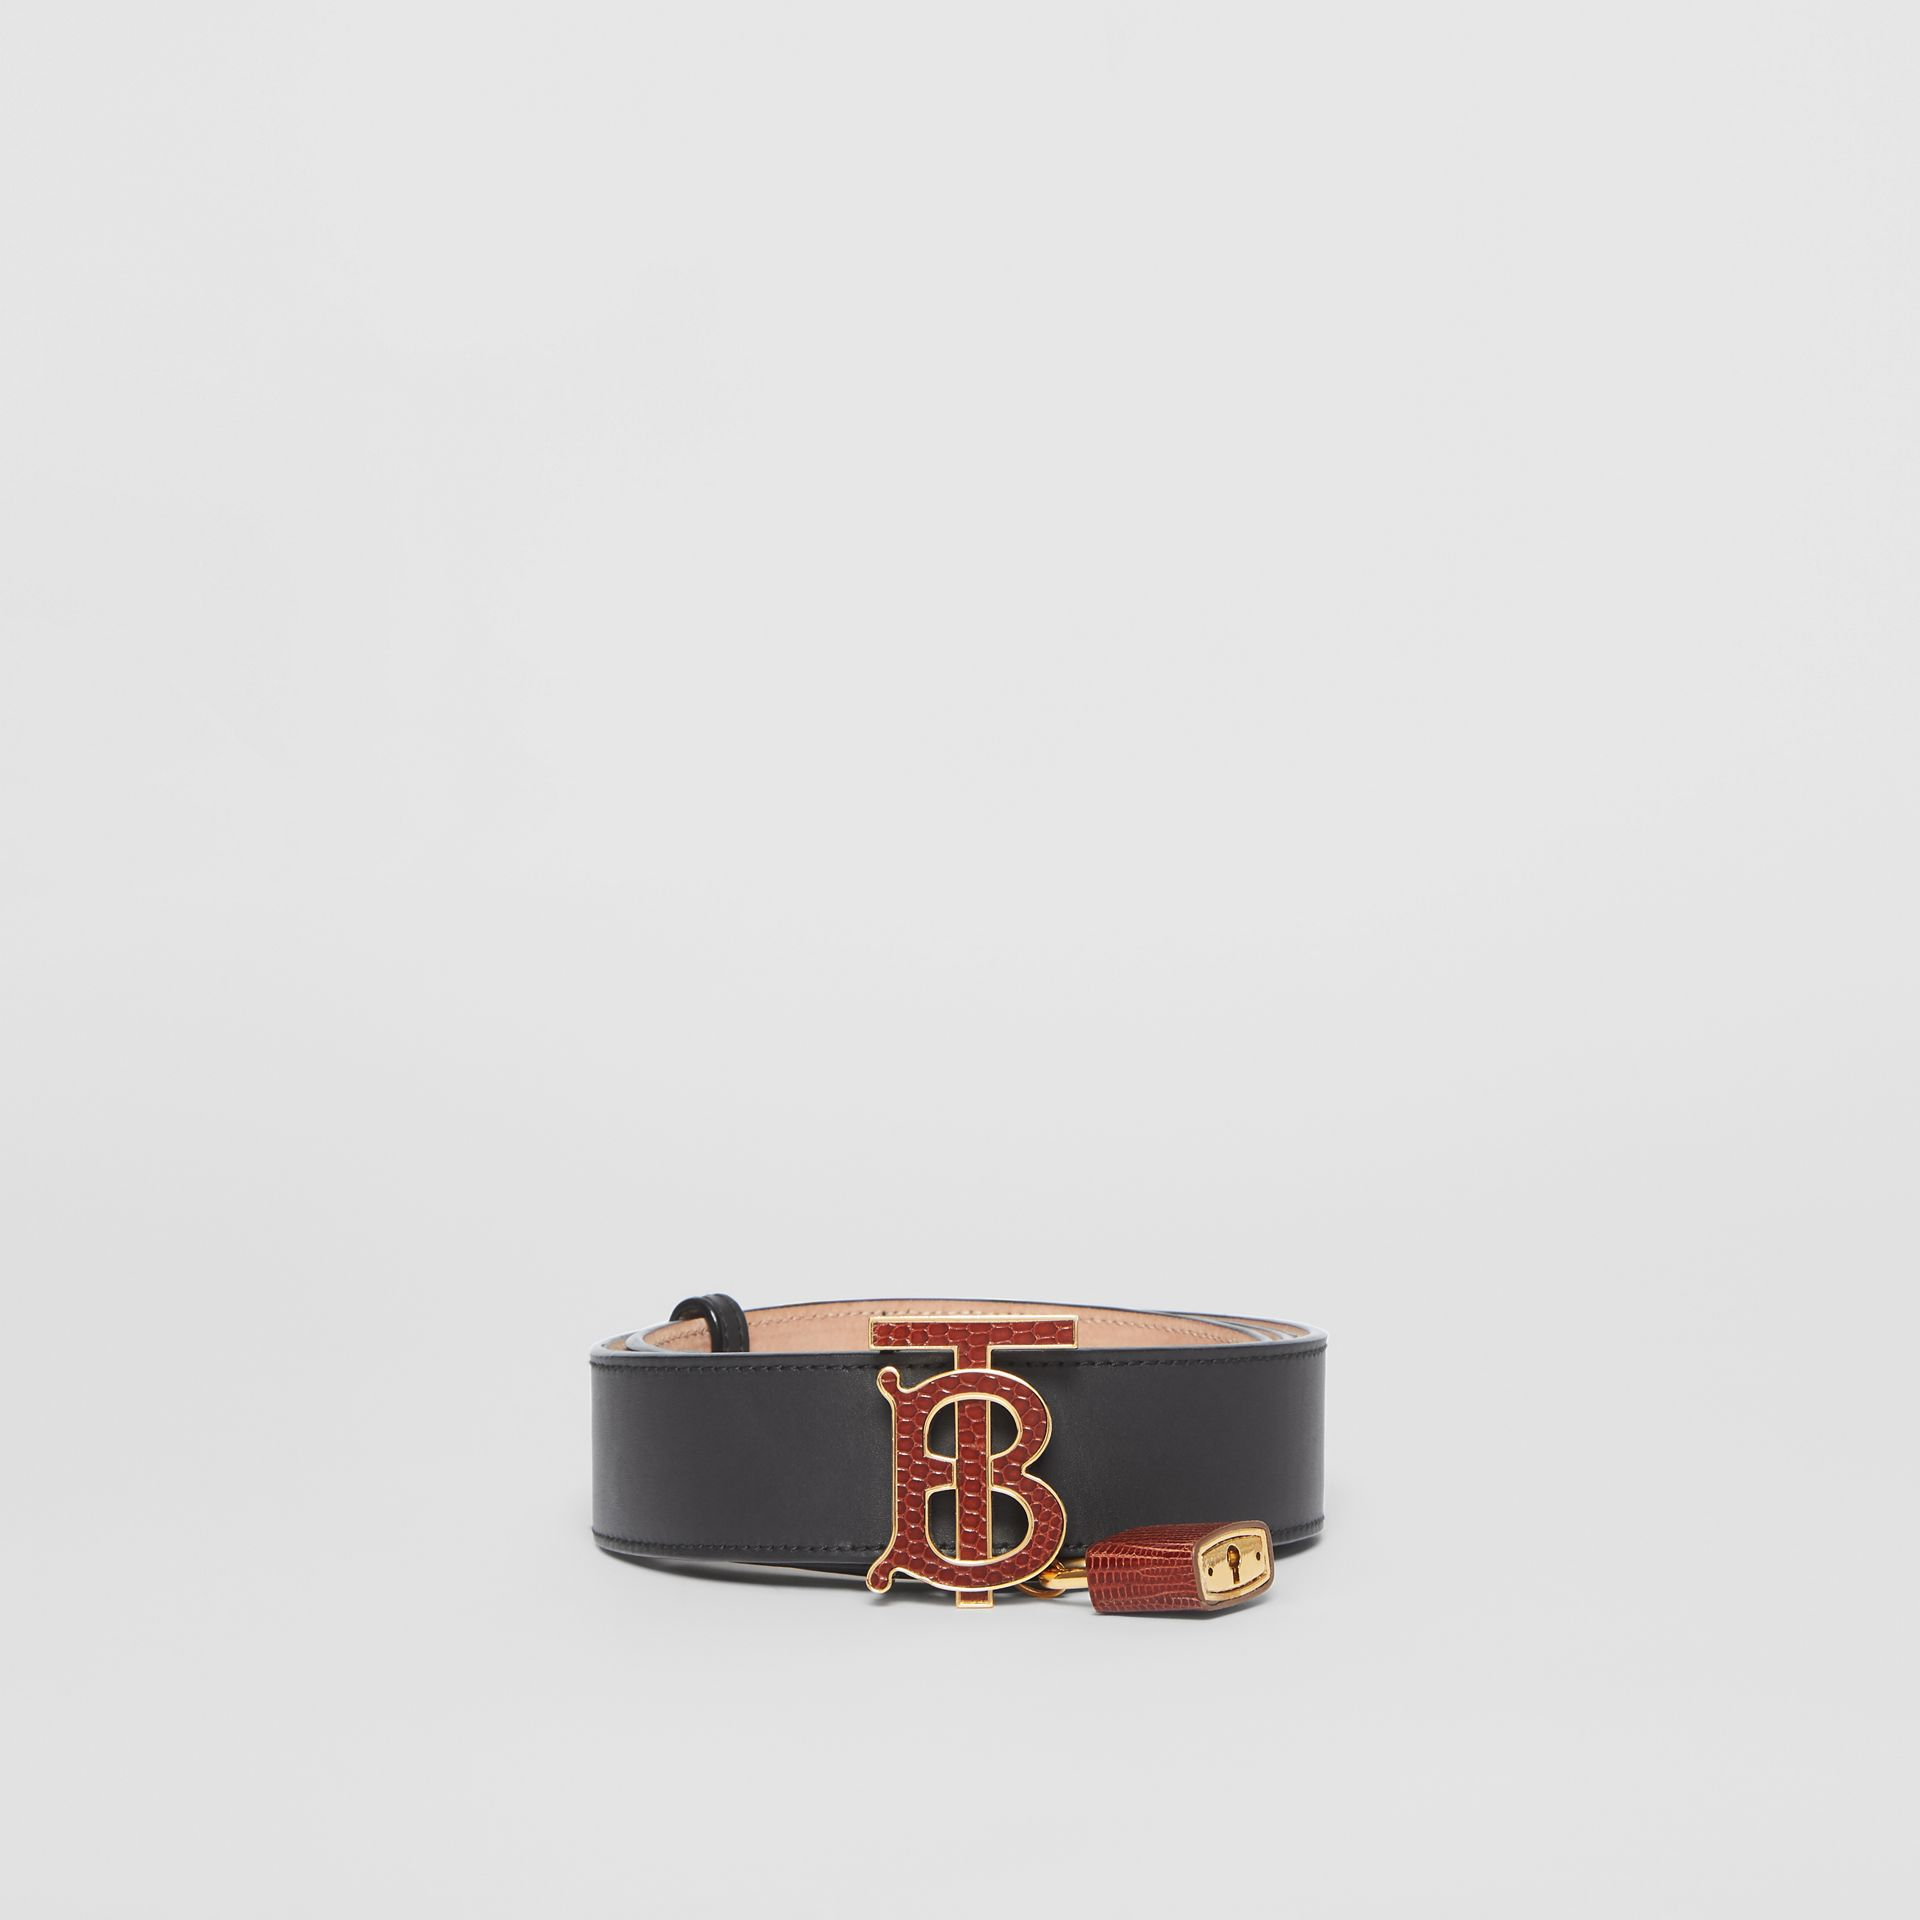 Padlock Detail Monogram Motif Leather Belt in Black/tan - Women | Burberry United Kingdom - gallery image 3